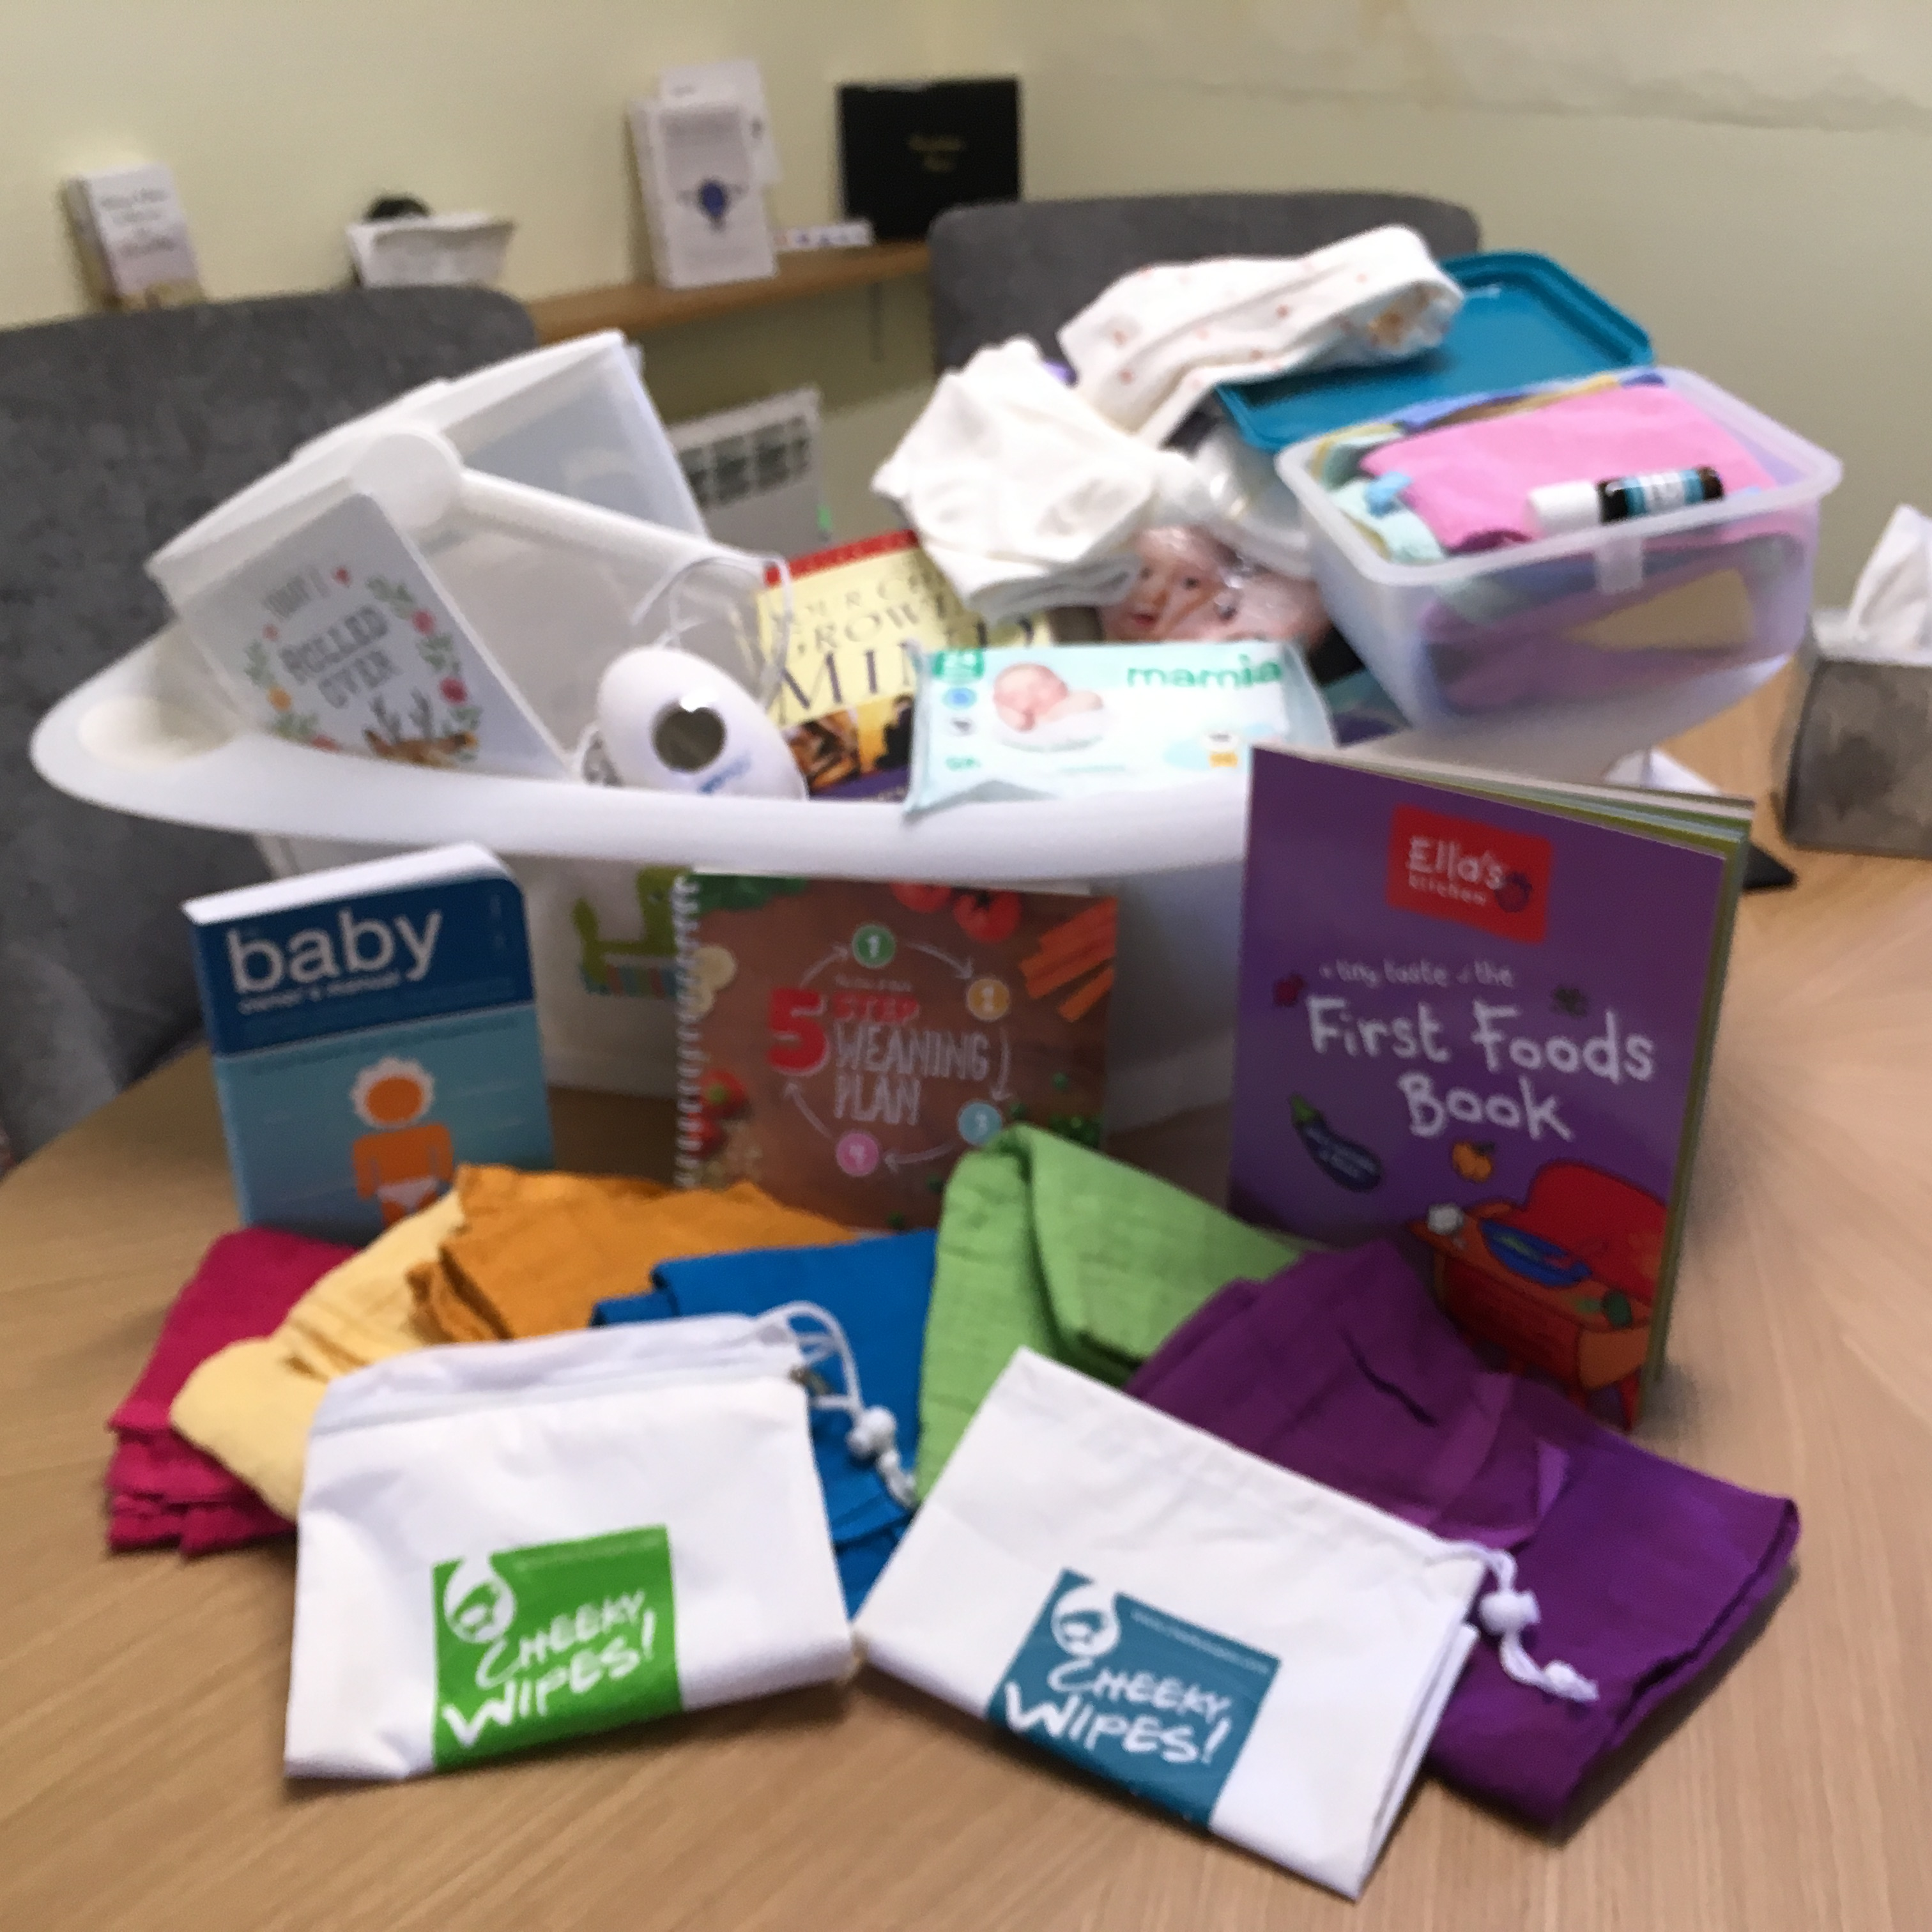 Ealing Salvation Army's Baby Bank